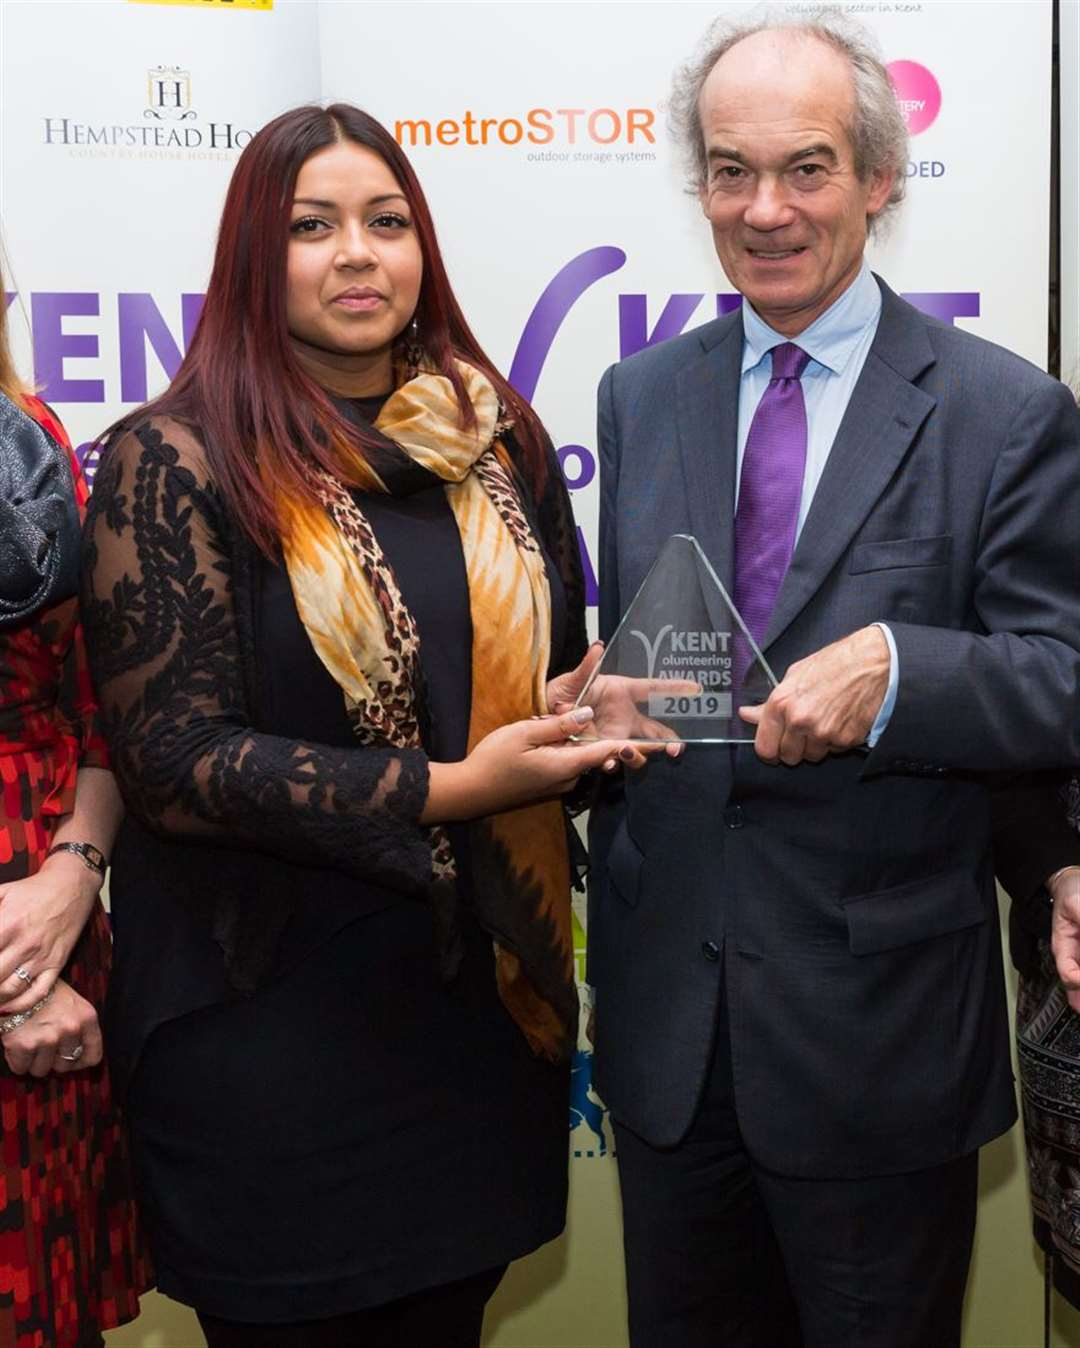 DAVSS CEO Henu Cummins at the Kent Volunteering Awards last year Picture: Martin Apps